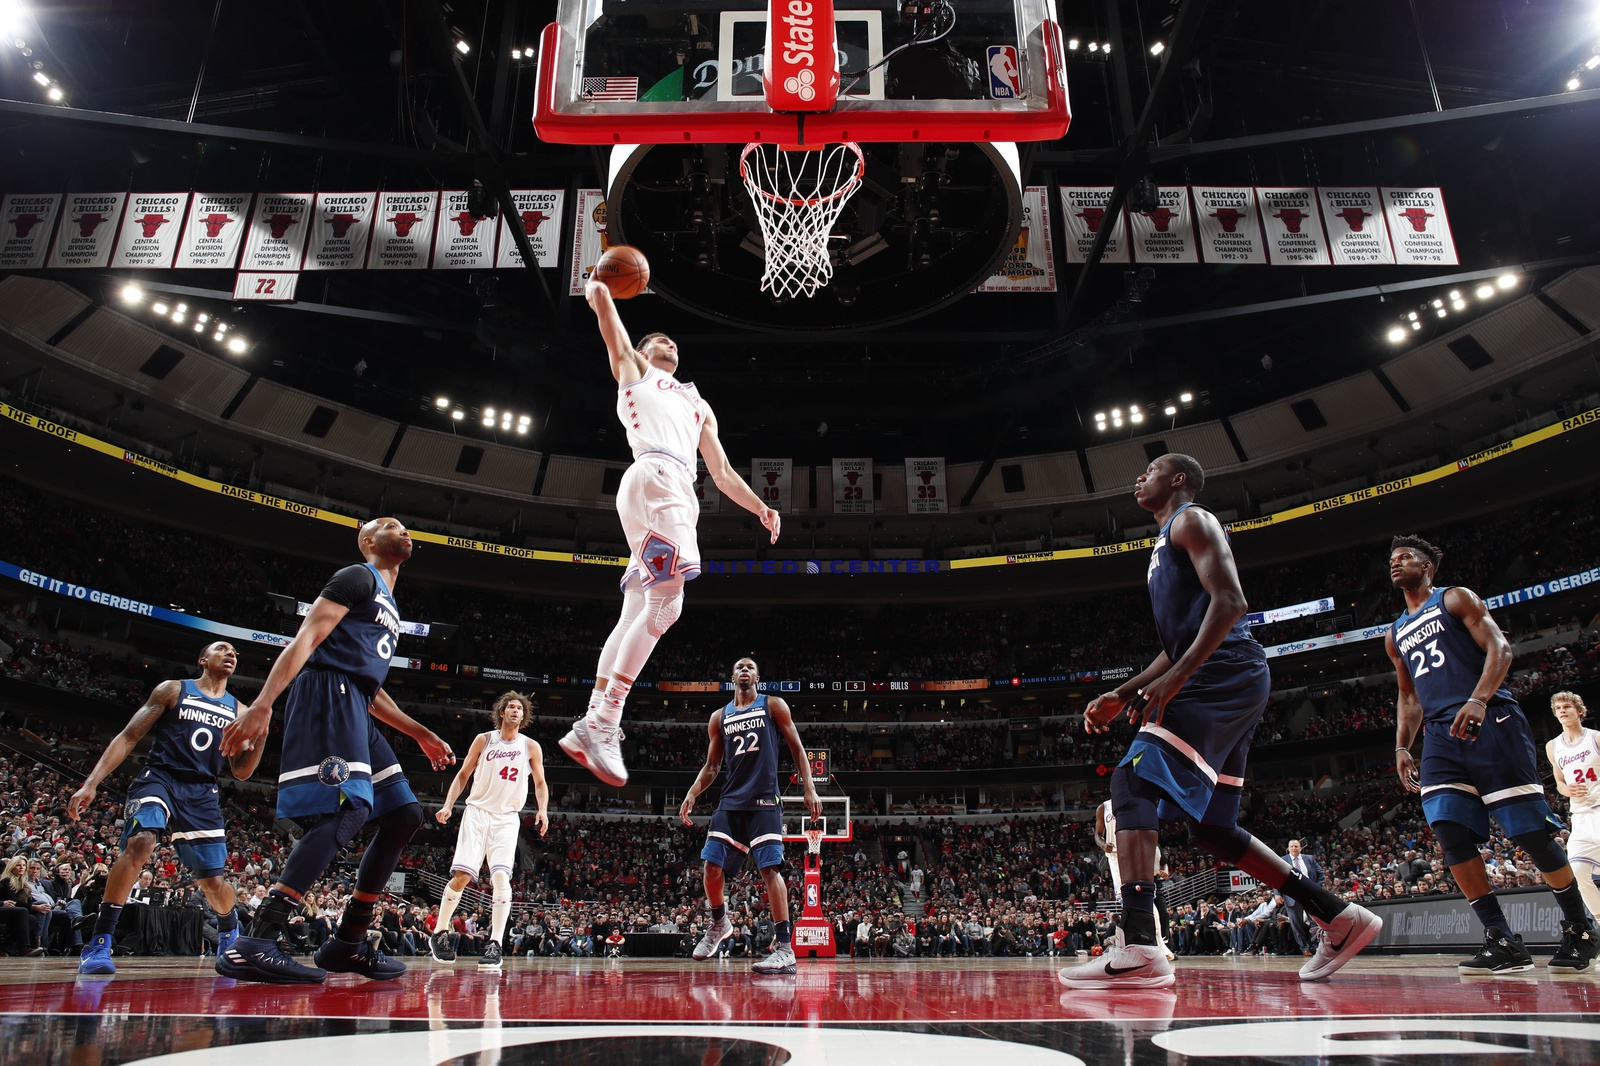 Zach LaVine #8 of the Chicago Bulls goes up for a dunk against the Minnesota Timberwolves on February 9, 2018 at the United Center in Chicago, Illinois.